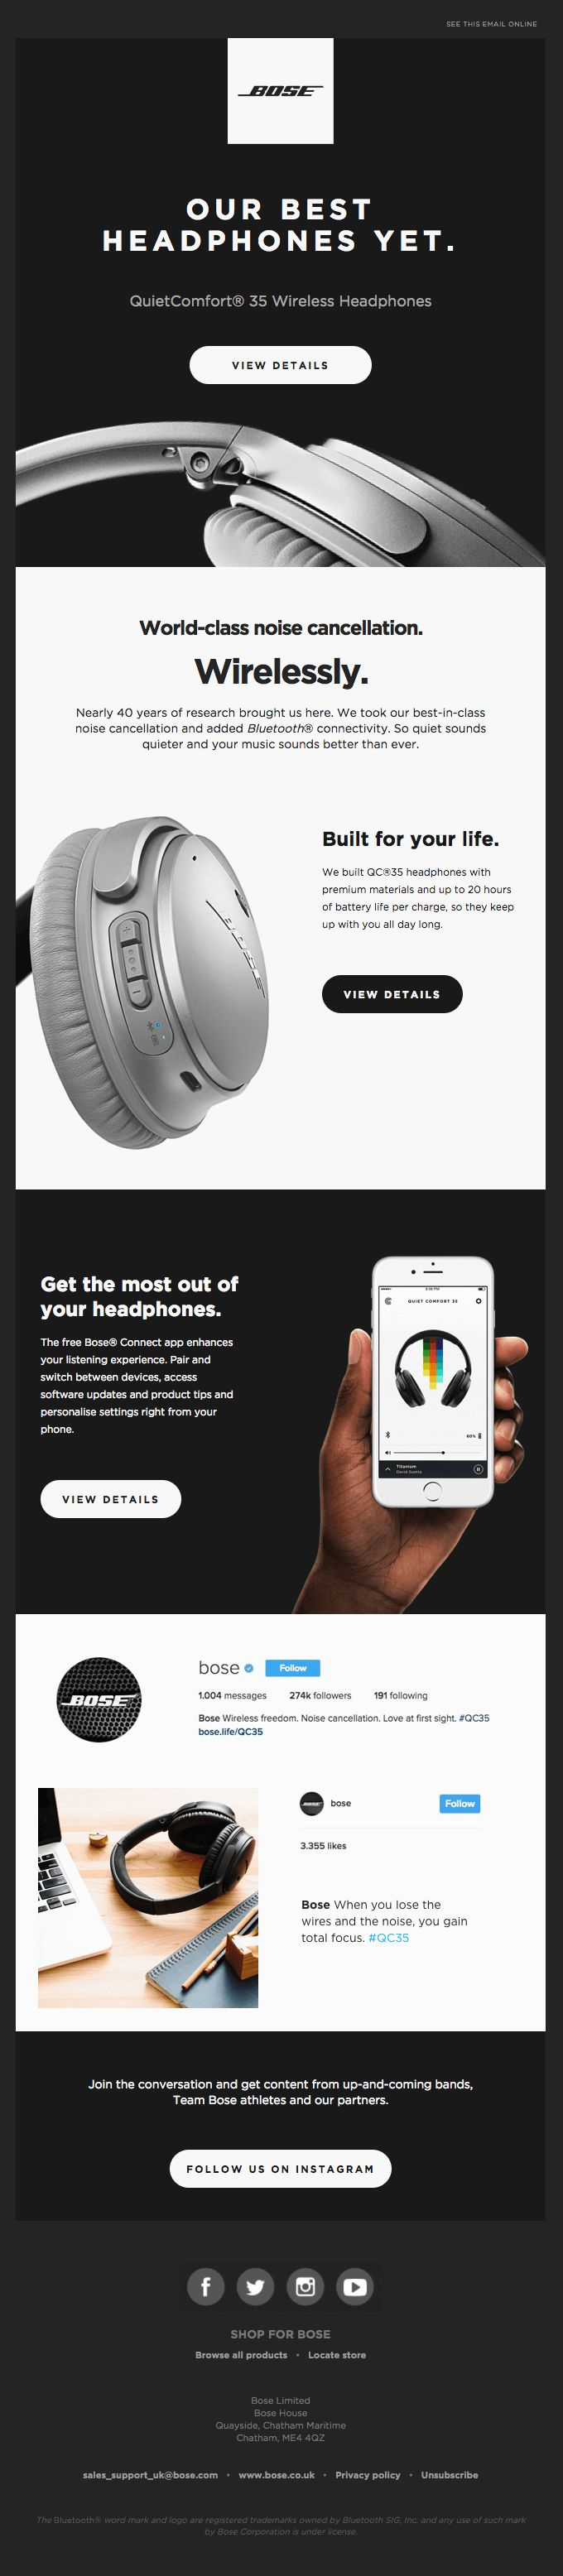 World-class Noise Cancellation + Wireless Freedom - Really Good Emails